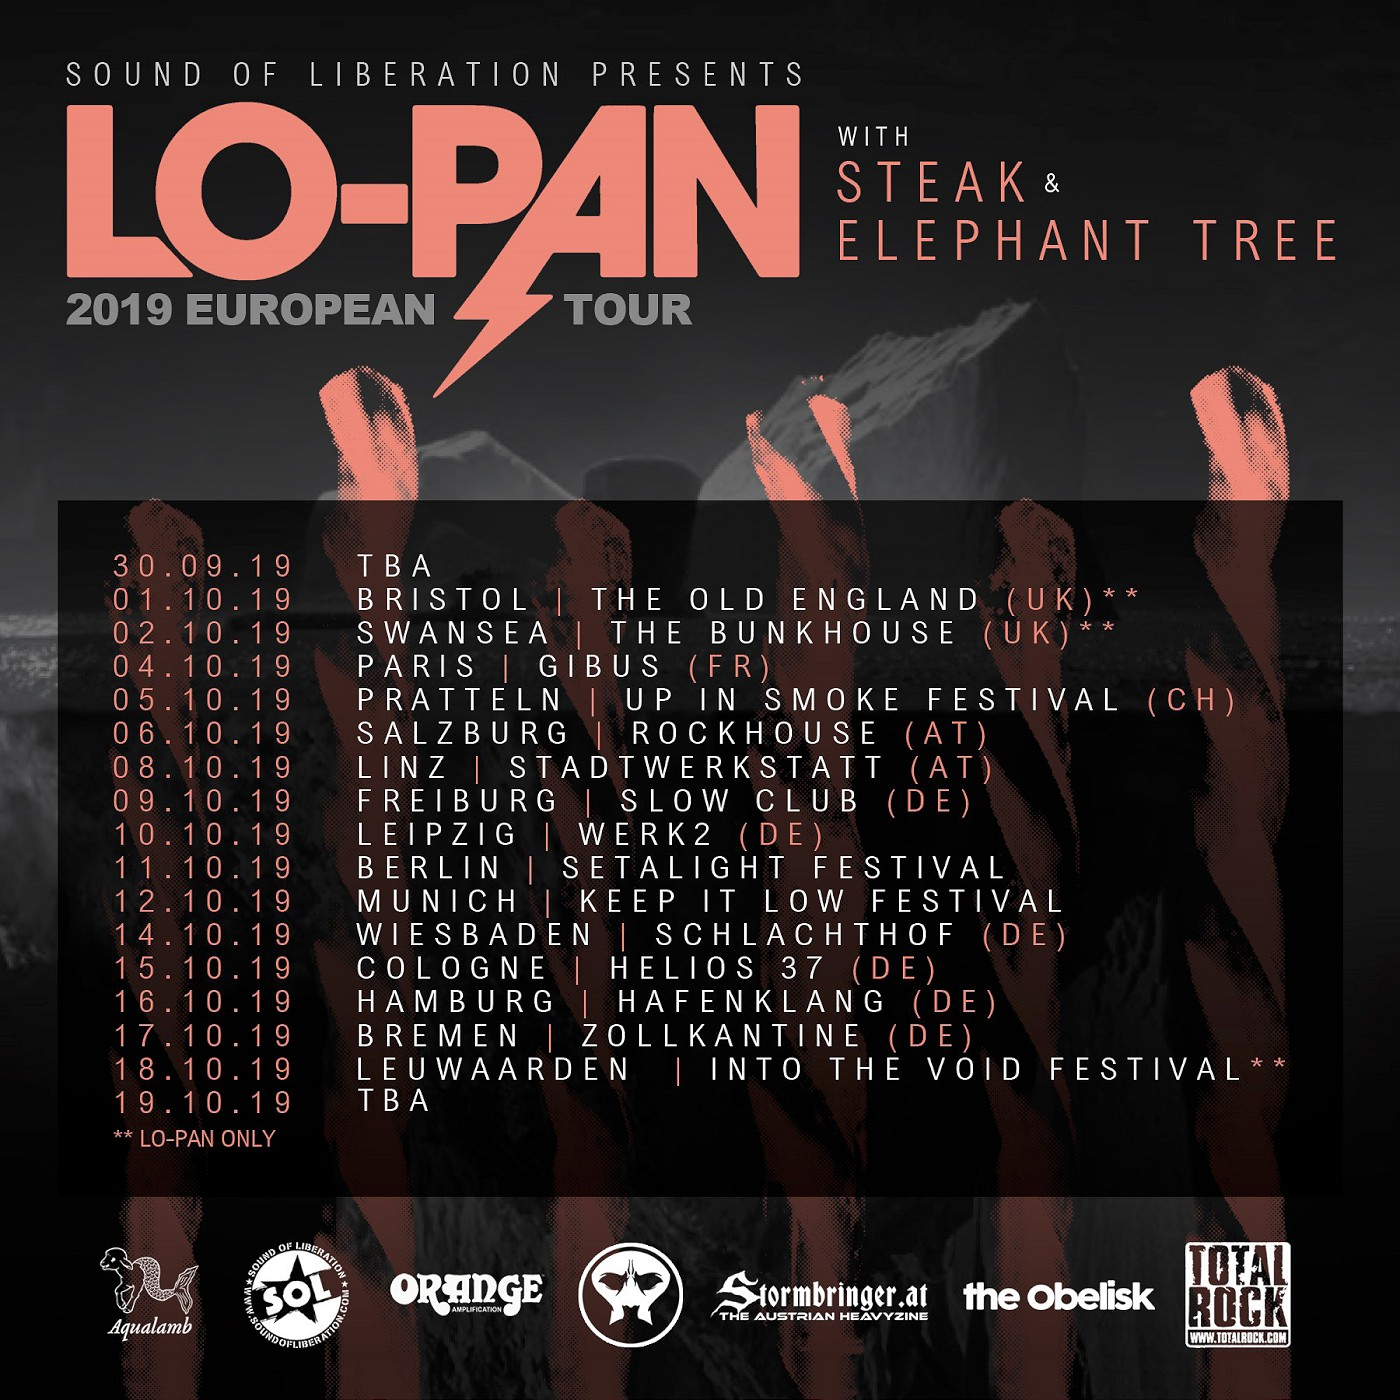 lo-pan steak elephant tree tour